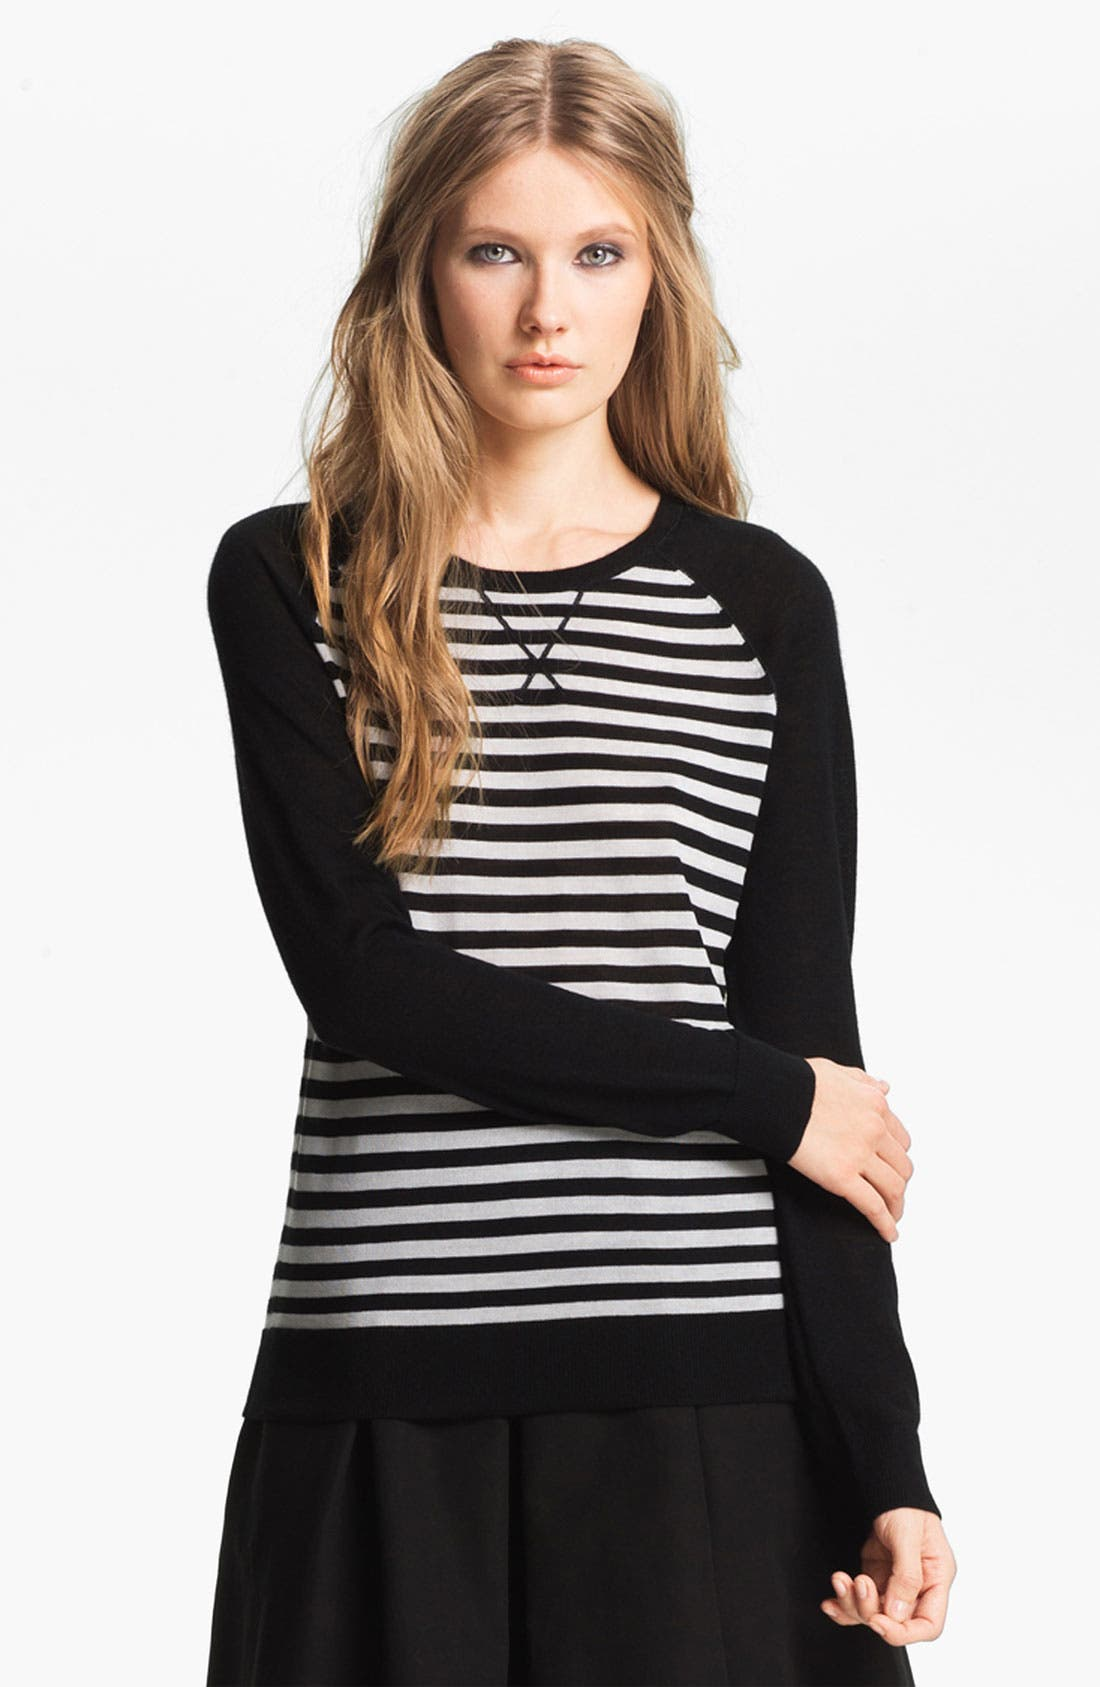 Alternate Image 1 Selected - Miss Wu 'Sofie' Stripe Cashmere Sweater (Nordstrom Exclusive)